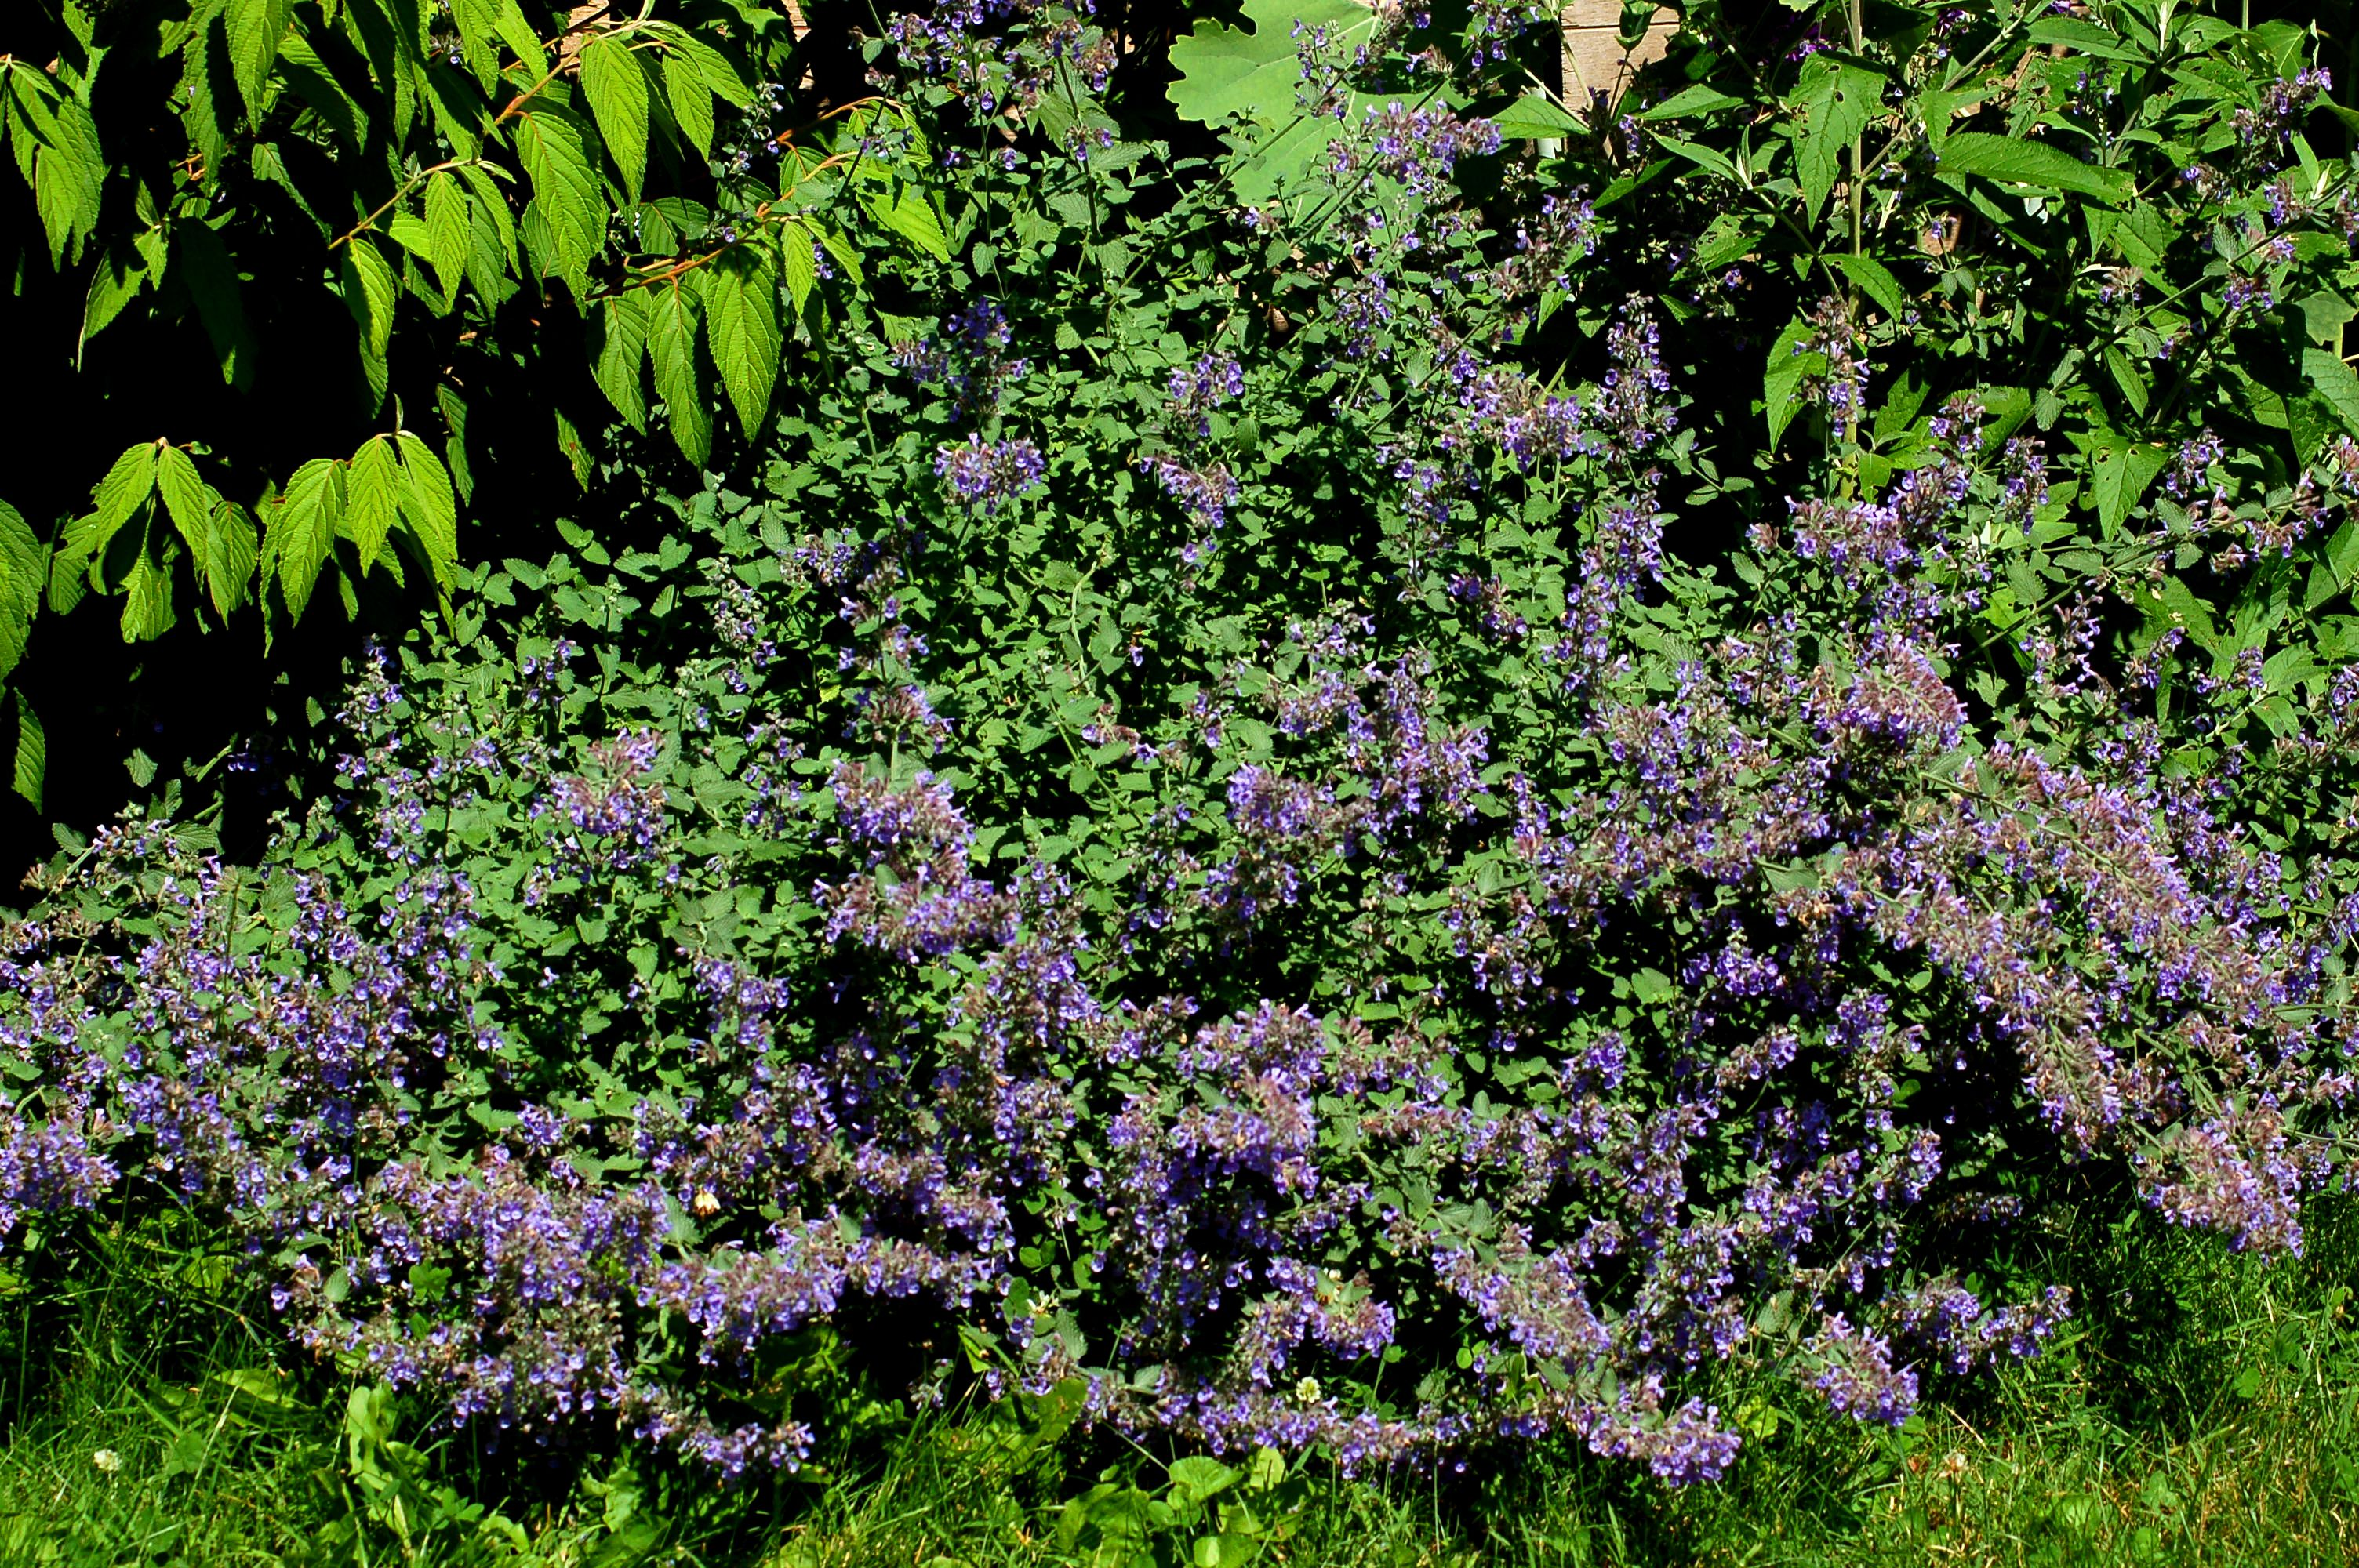 6 Hills Giant catmint